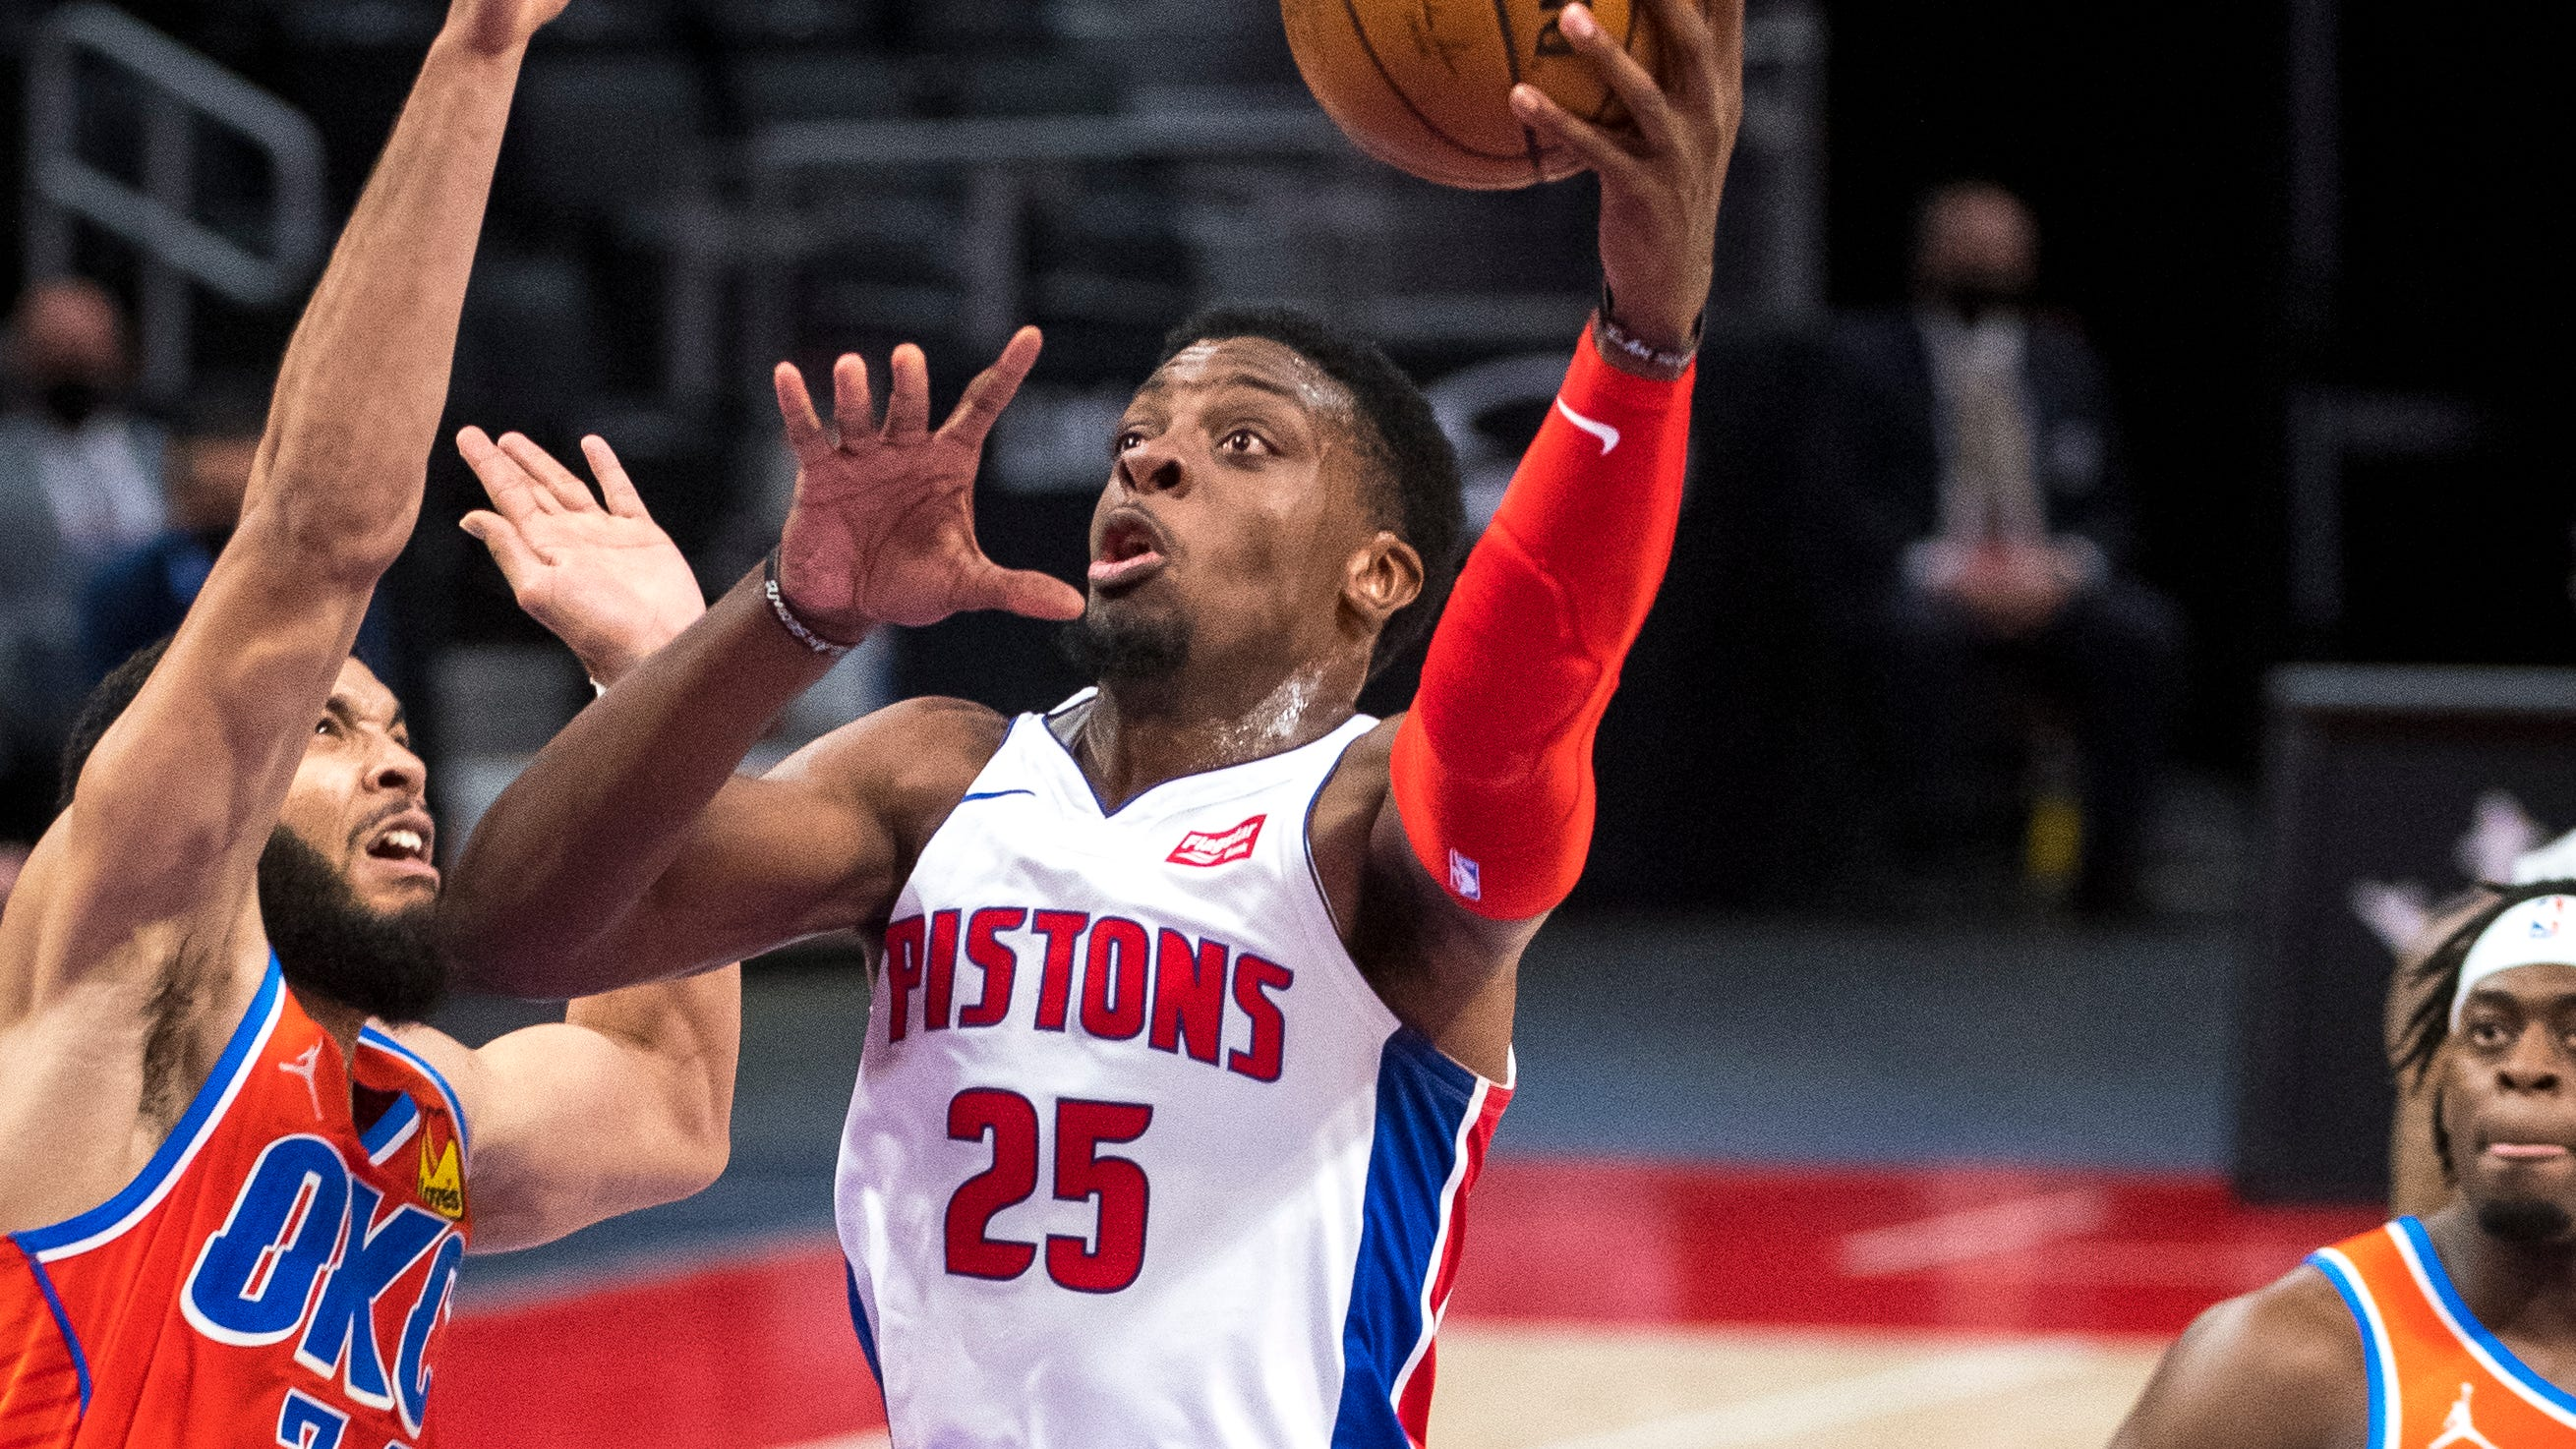 Tyler Cook grateful for NBA chance, hopes to stay with Detroit Pistons